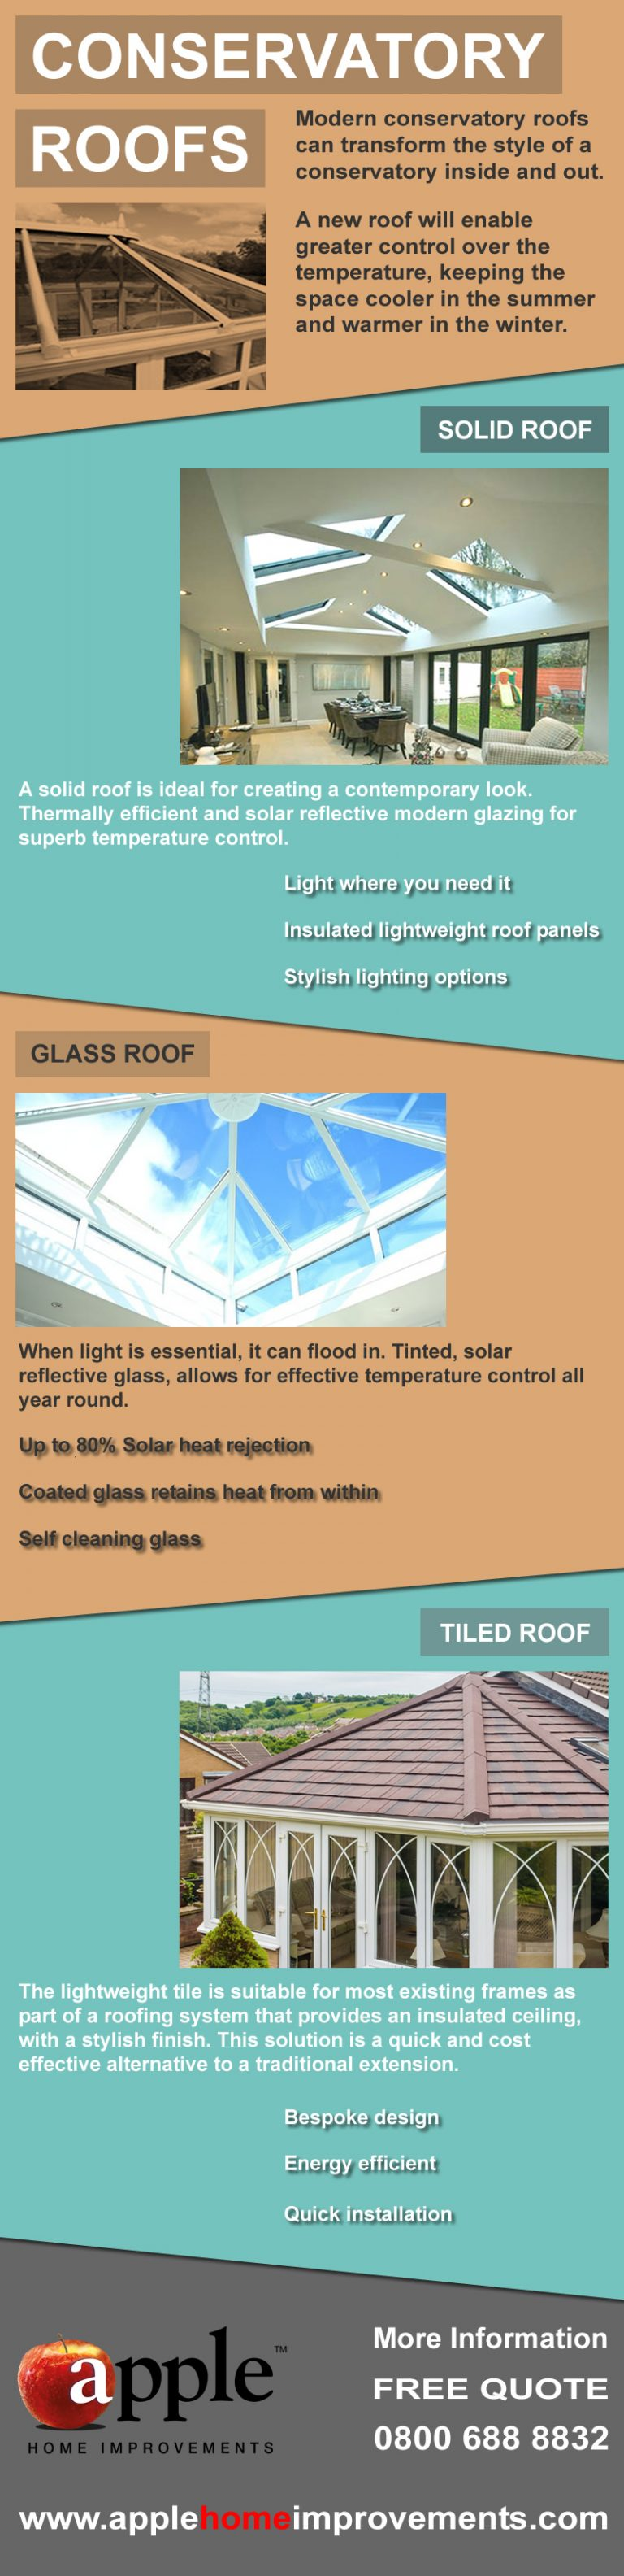 Conservatory Roofs Infographic